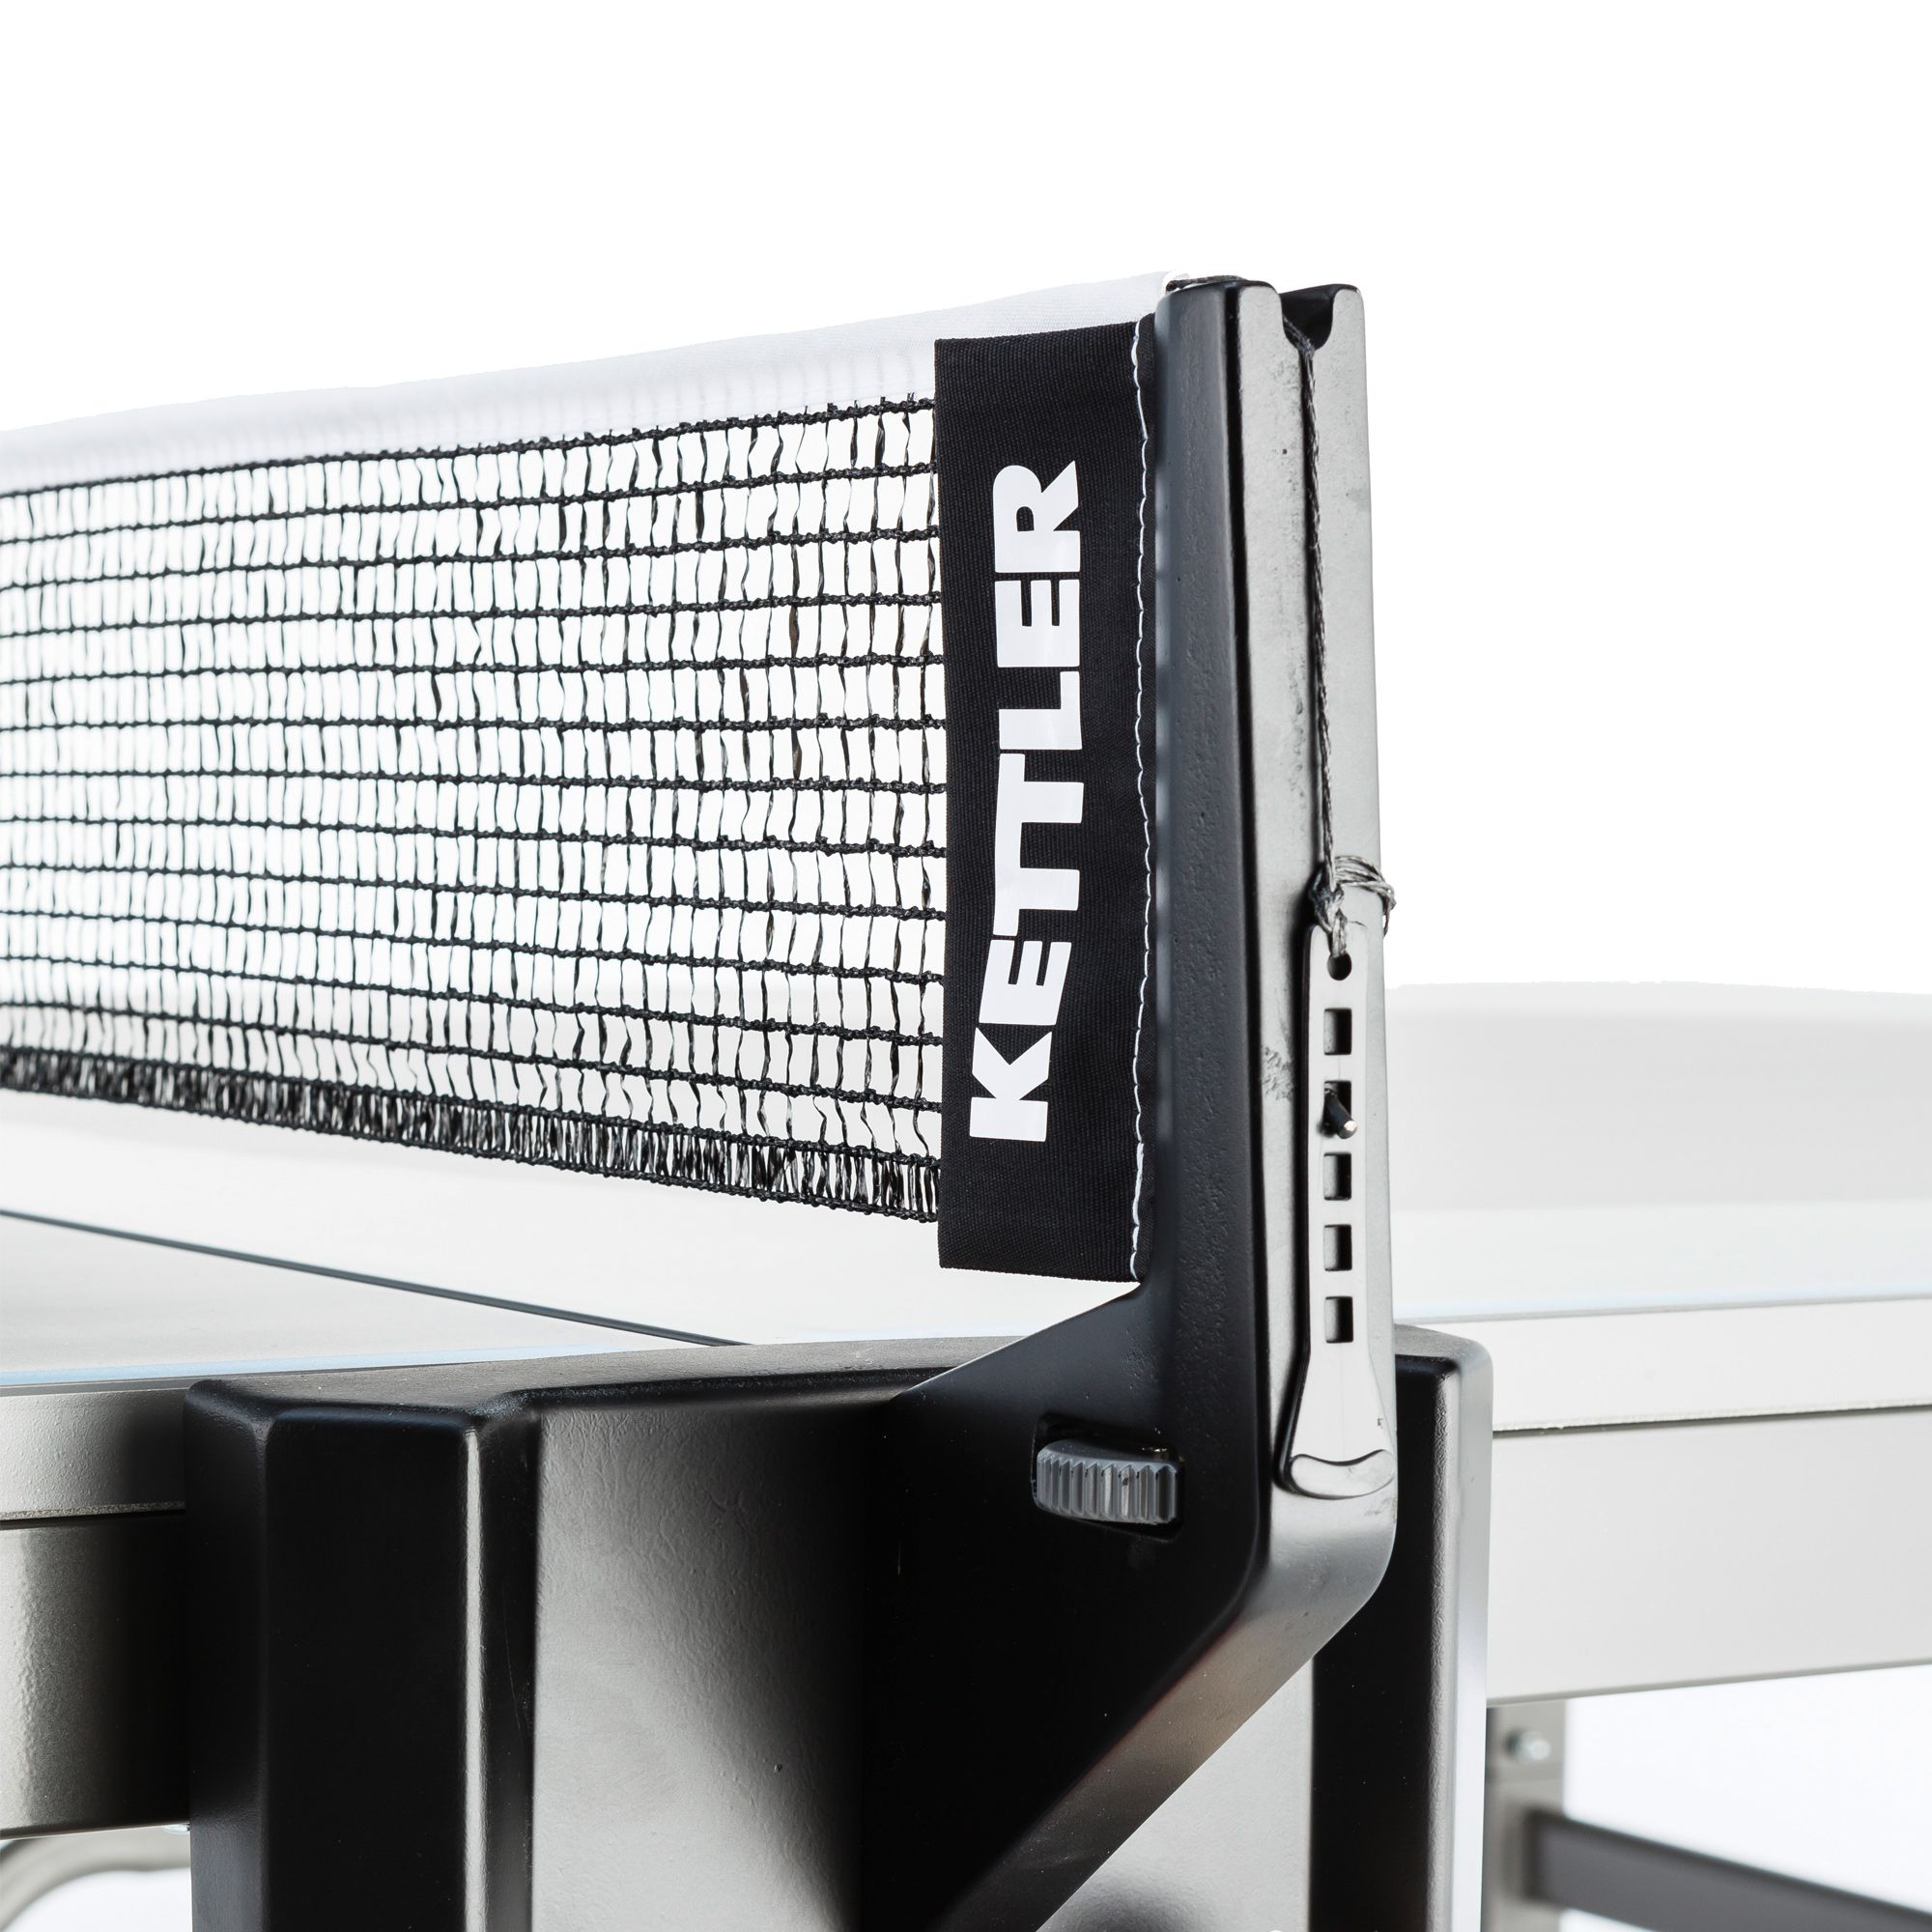 kettler classic outdoor 10 table tennis table. Black Bedroom Furniture Sets. Home Design Ideas